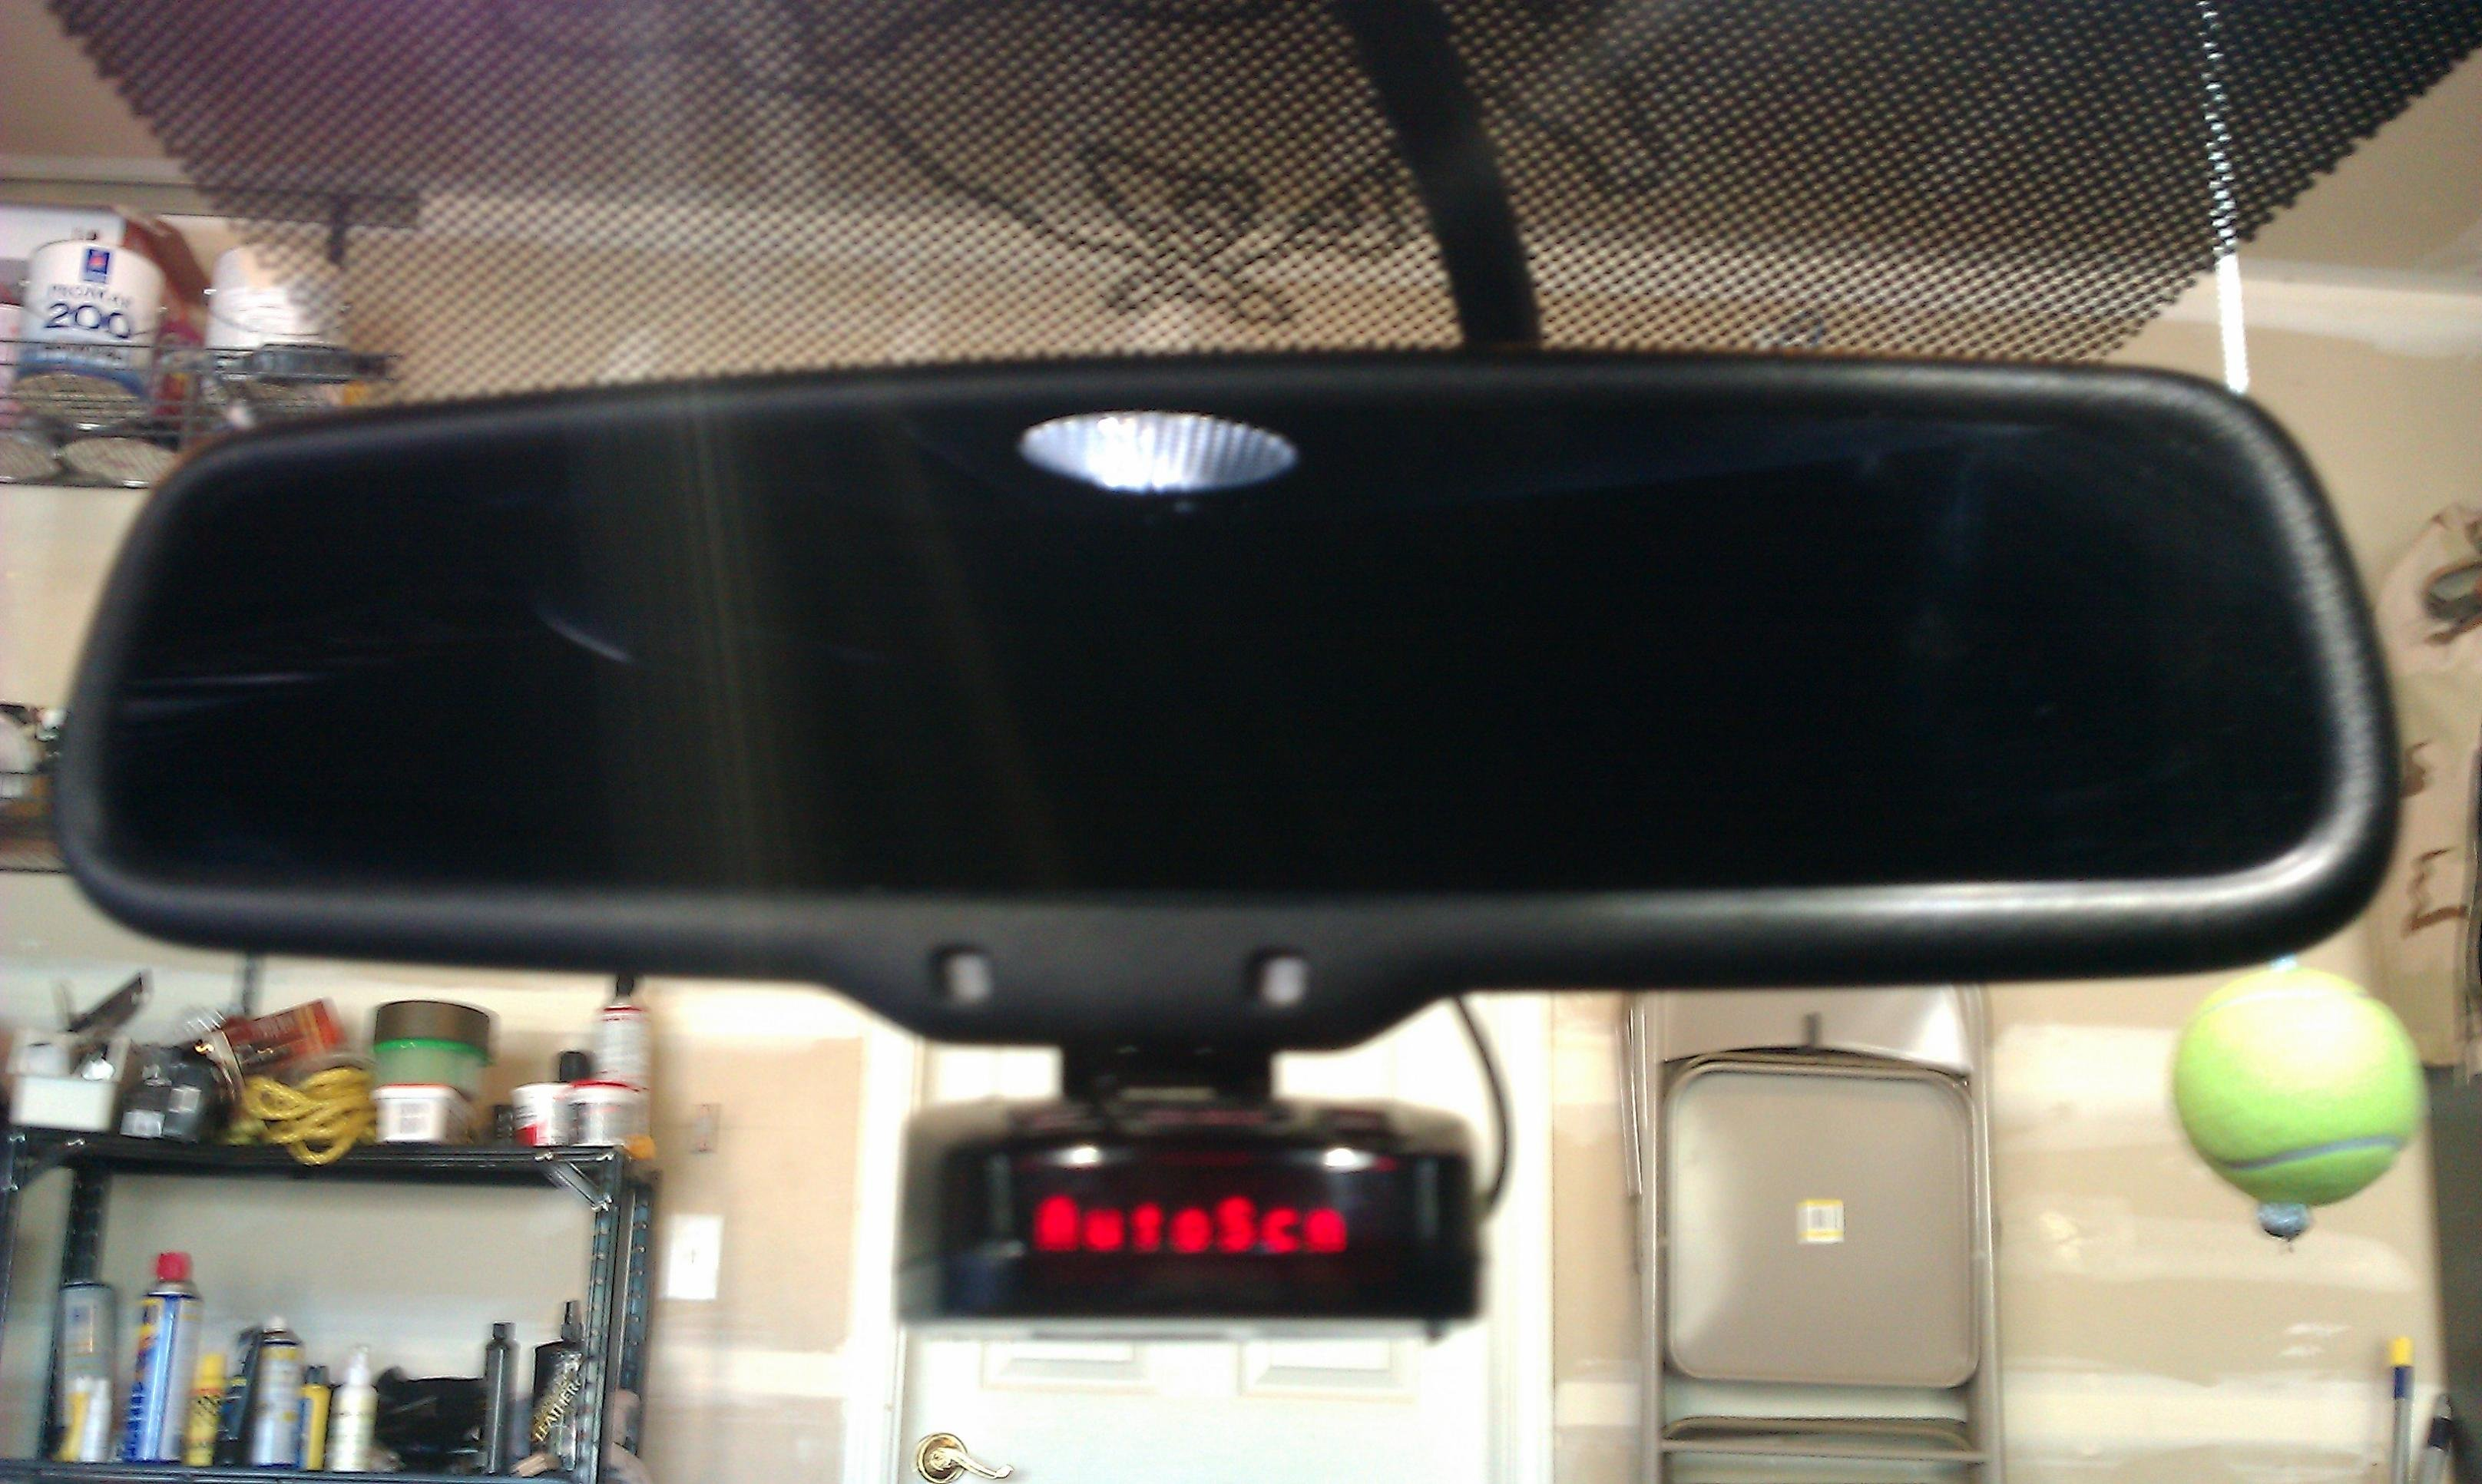 159501d1341689454 installed rogue mount rear view mirror imag0171 installed rogue mount on rear view mirror ford mustang forum  at honlapkeszites.co